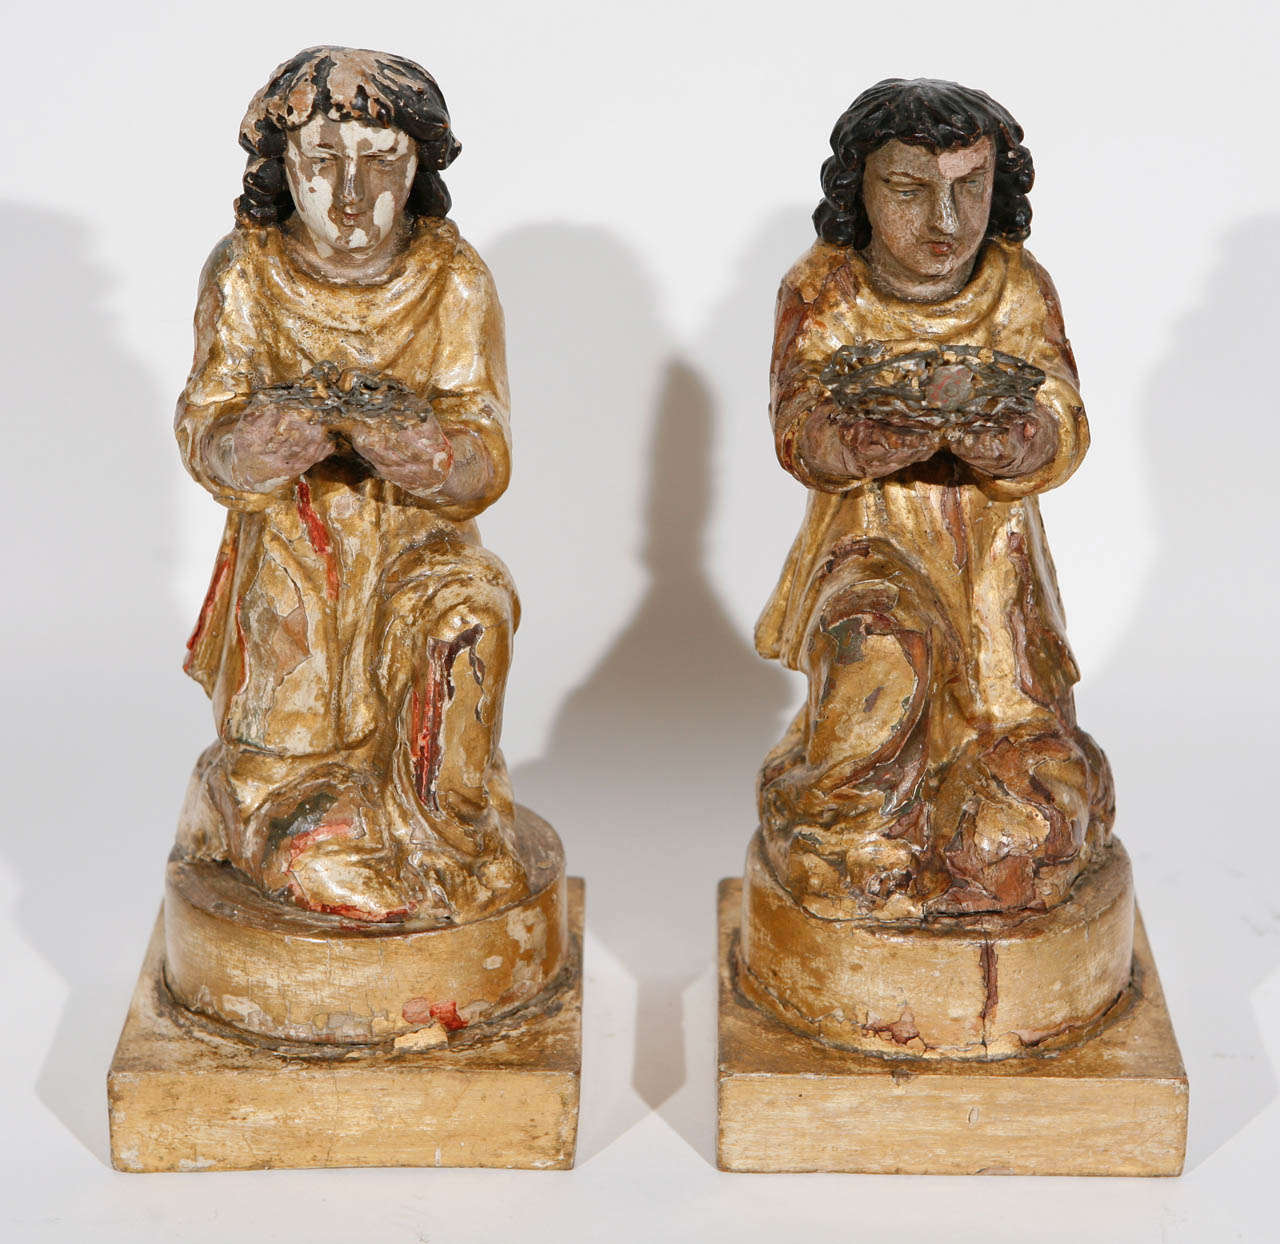 Pair of 18th c. Italian Carved Giltwood Saints.  The base measurement is 4.5 inches.